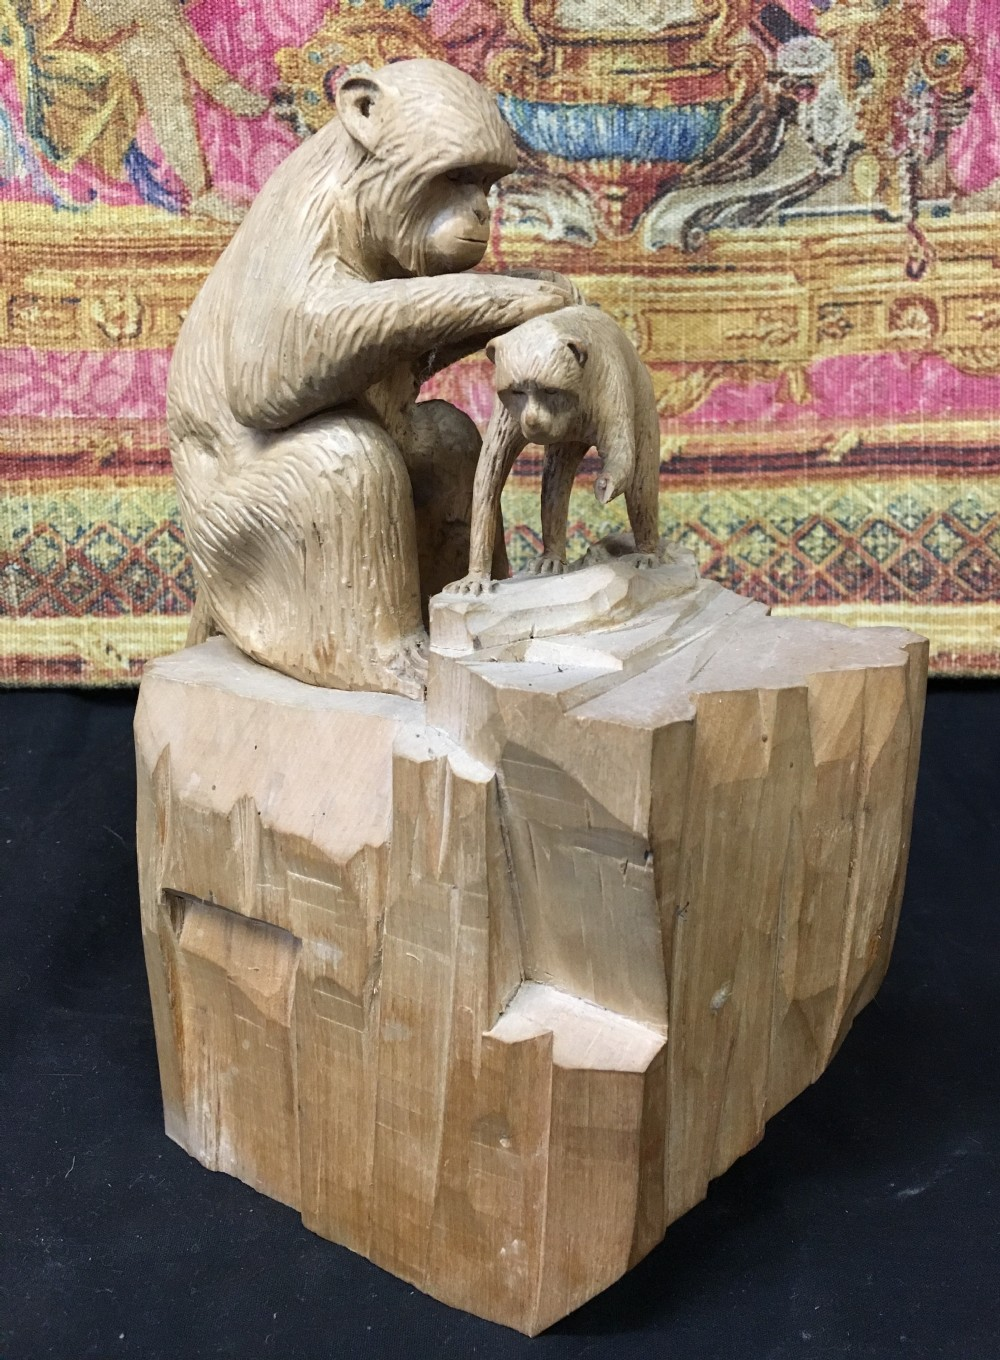 c20th limewood carving of a monkey tending its baby